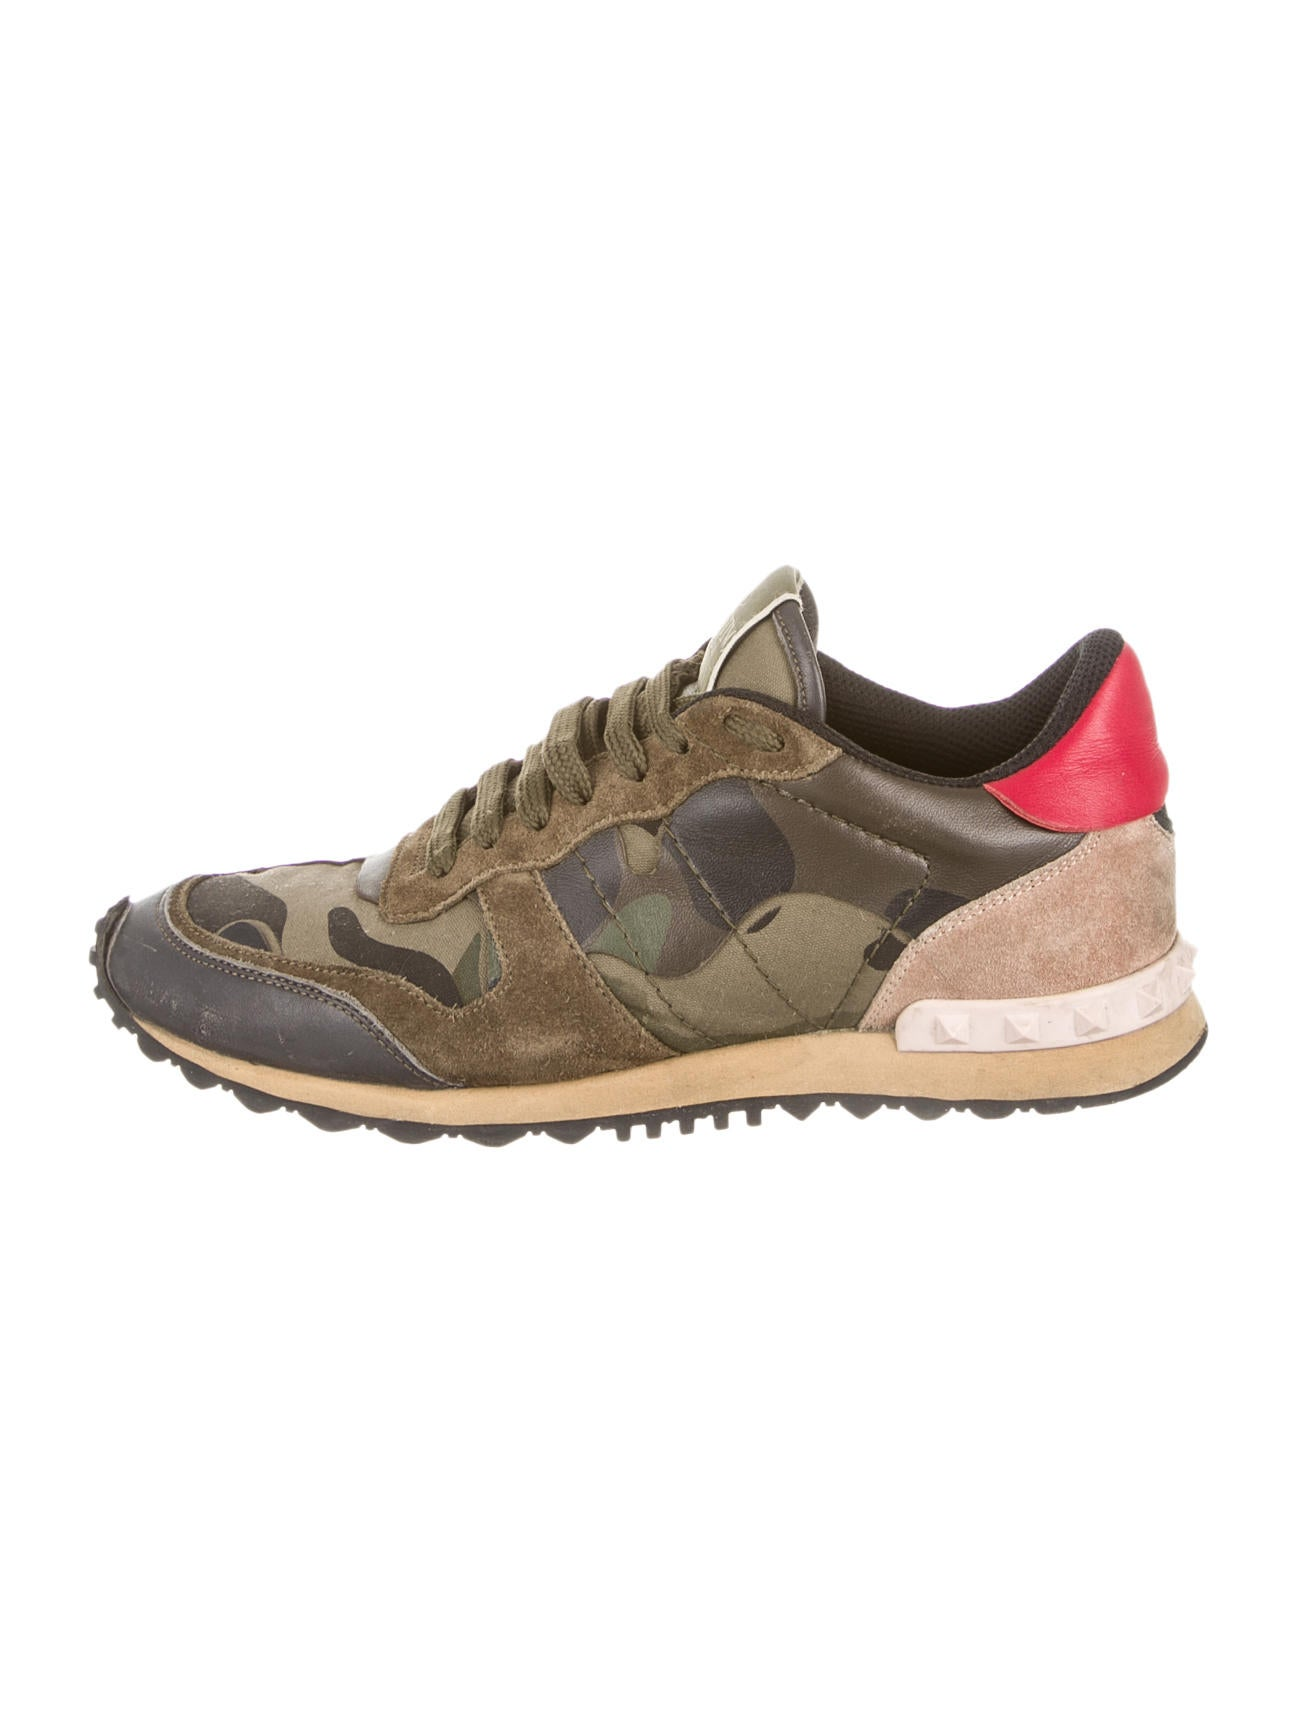 valentino rockrunner camouflage sneakers shoes val35956 the realreal. Black Bedroom Furniture Sets. Home Design Ideas